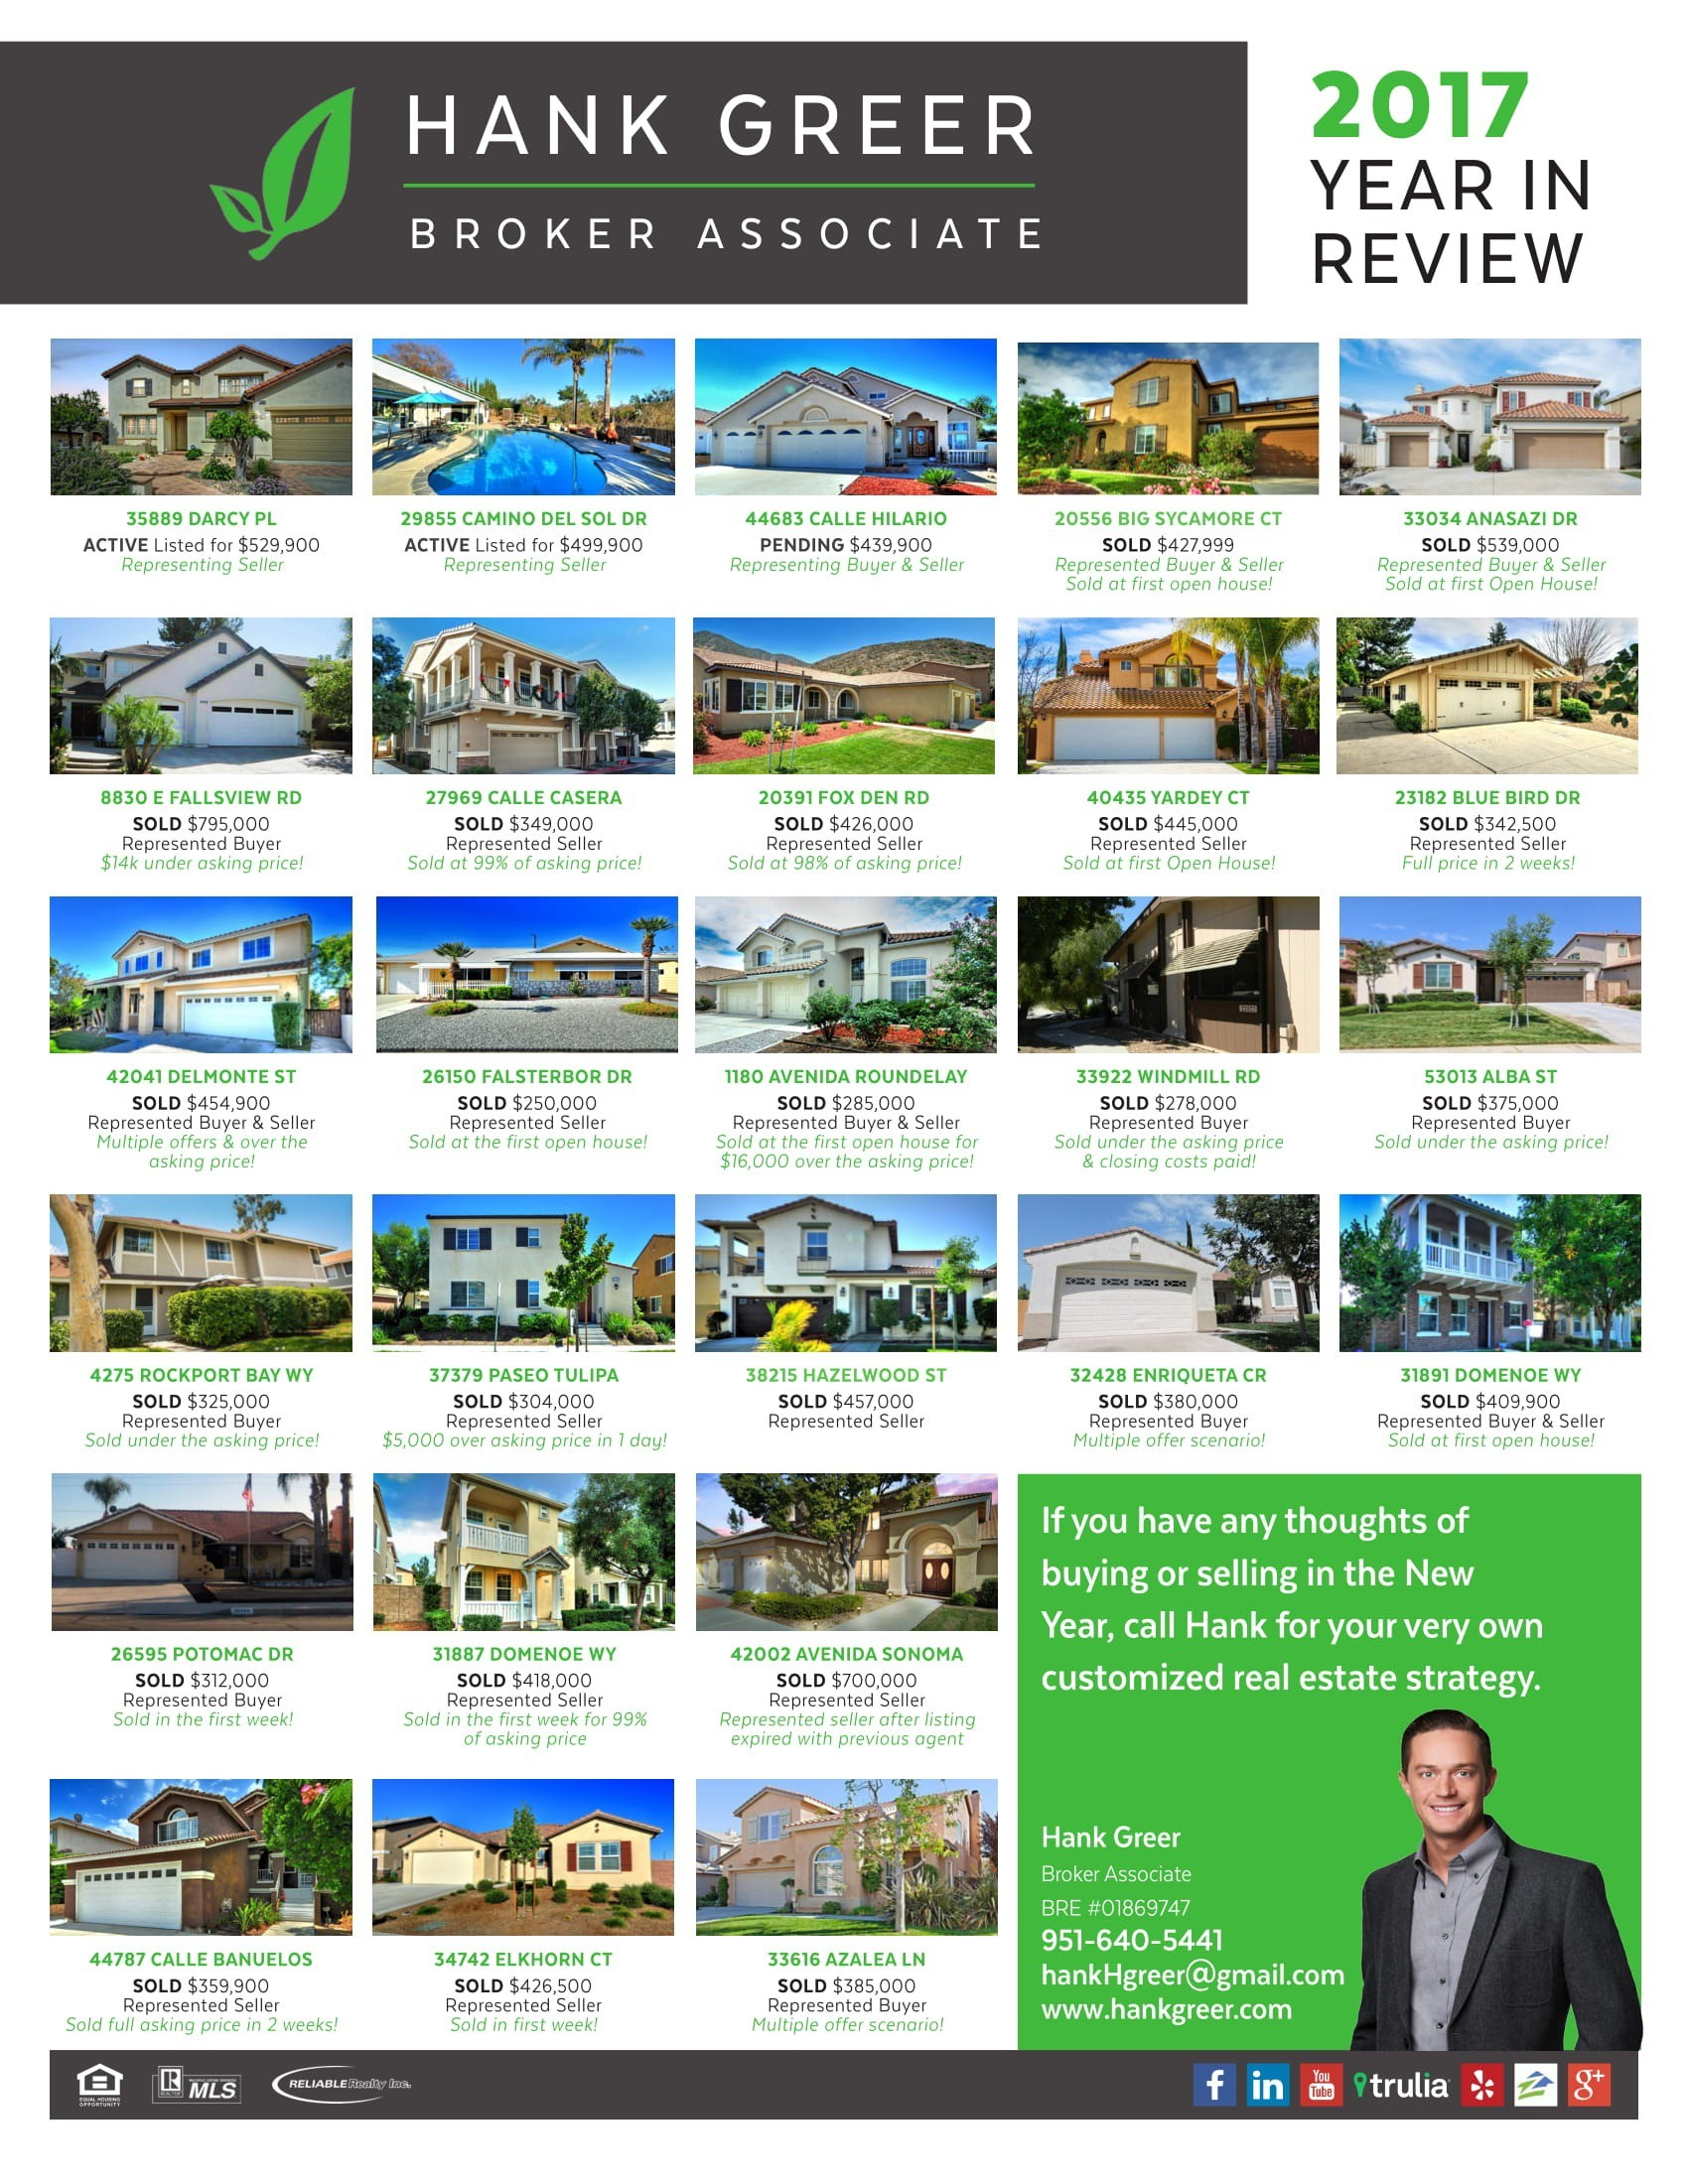 All sold homes by Hank Greer in 2017 in and around the Temecula California area.